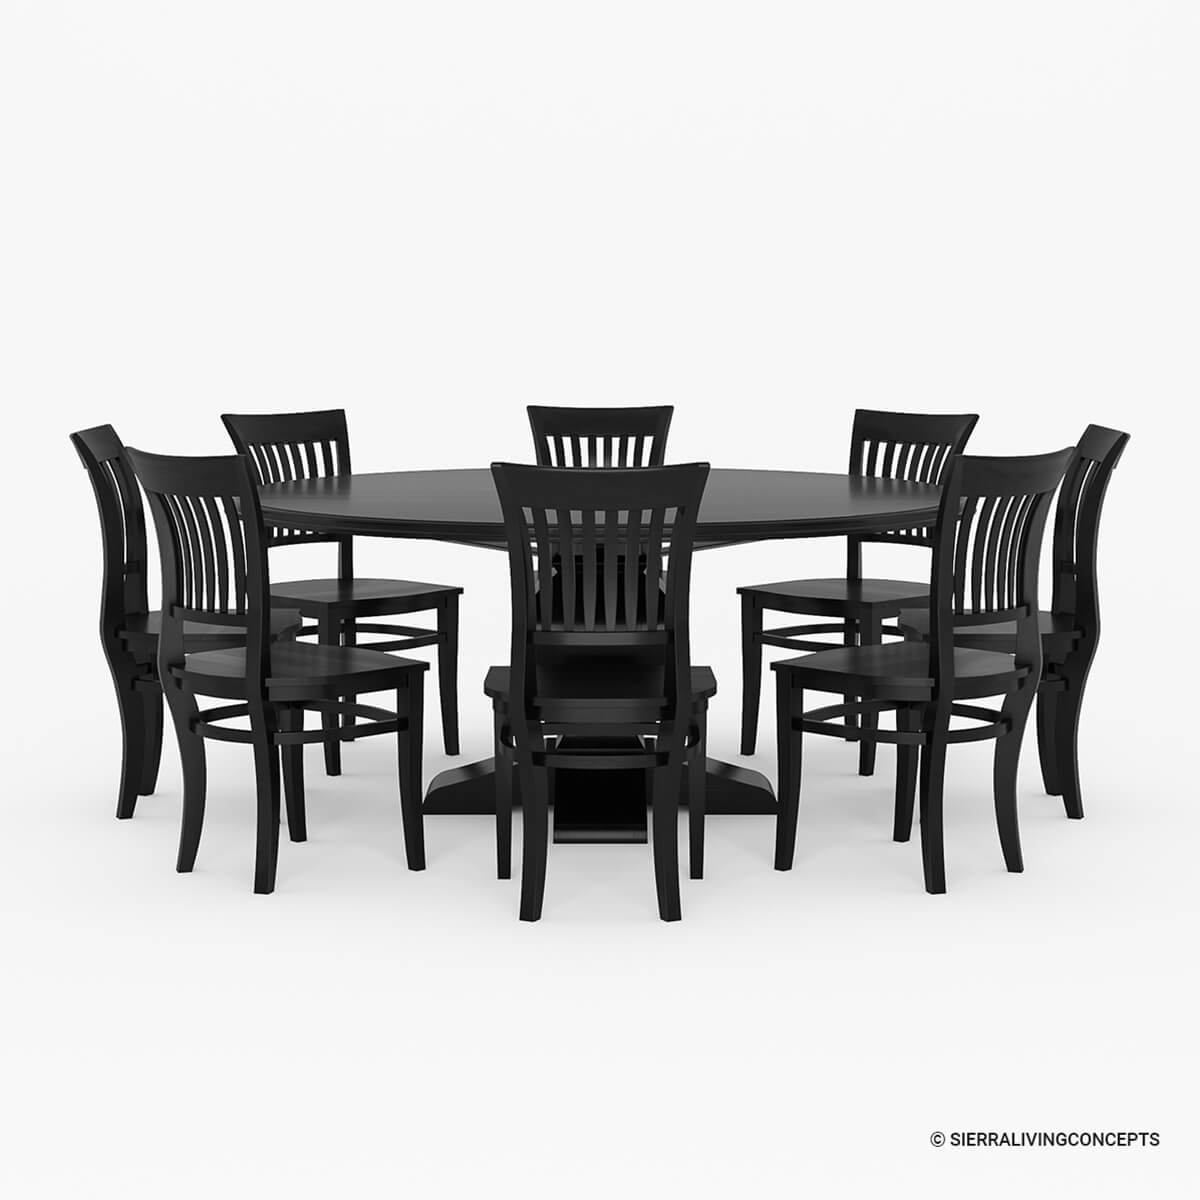 Photo 10 seater dining table dimensions images 10 for 10 seat dining table dimensions